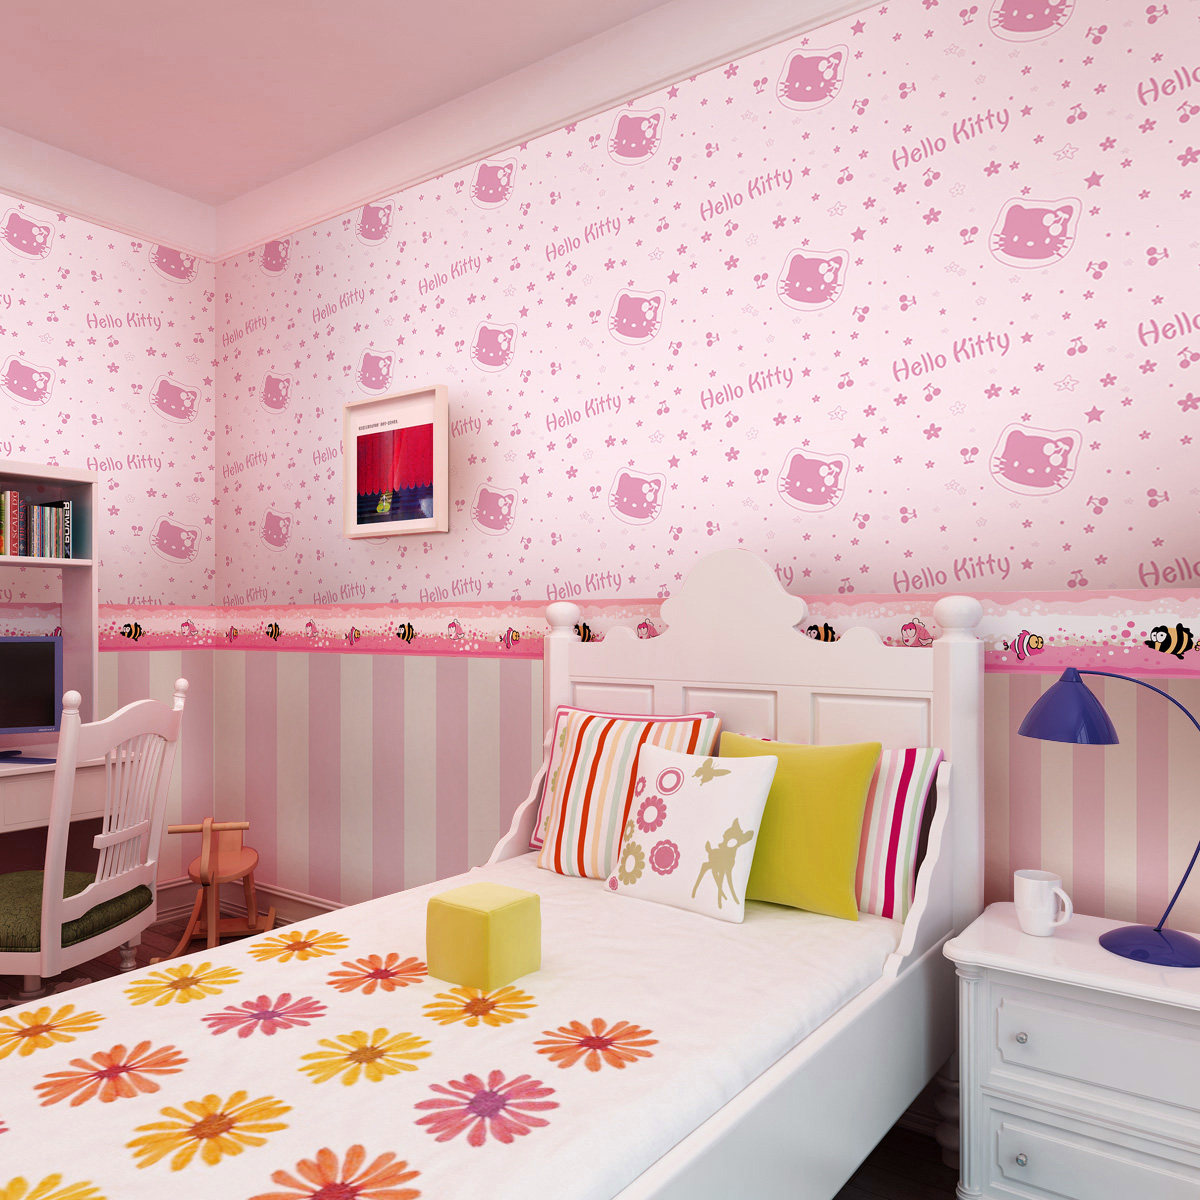 Hello Kitty Non Woven Wallpaper Cute Pink Princess Bedroom Warm Childrenu0027s  Room Background Wallpaper Free Ship In Wallpapers From Home Improvement On  ...